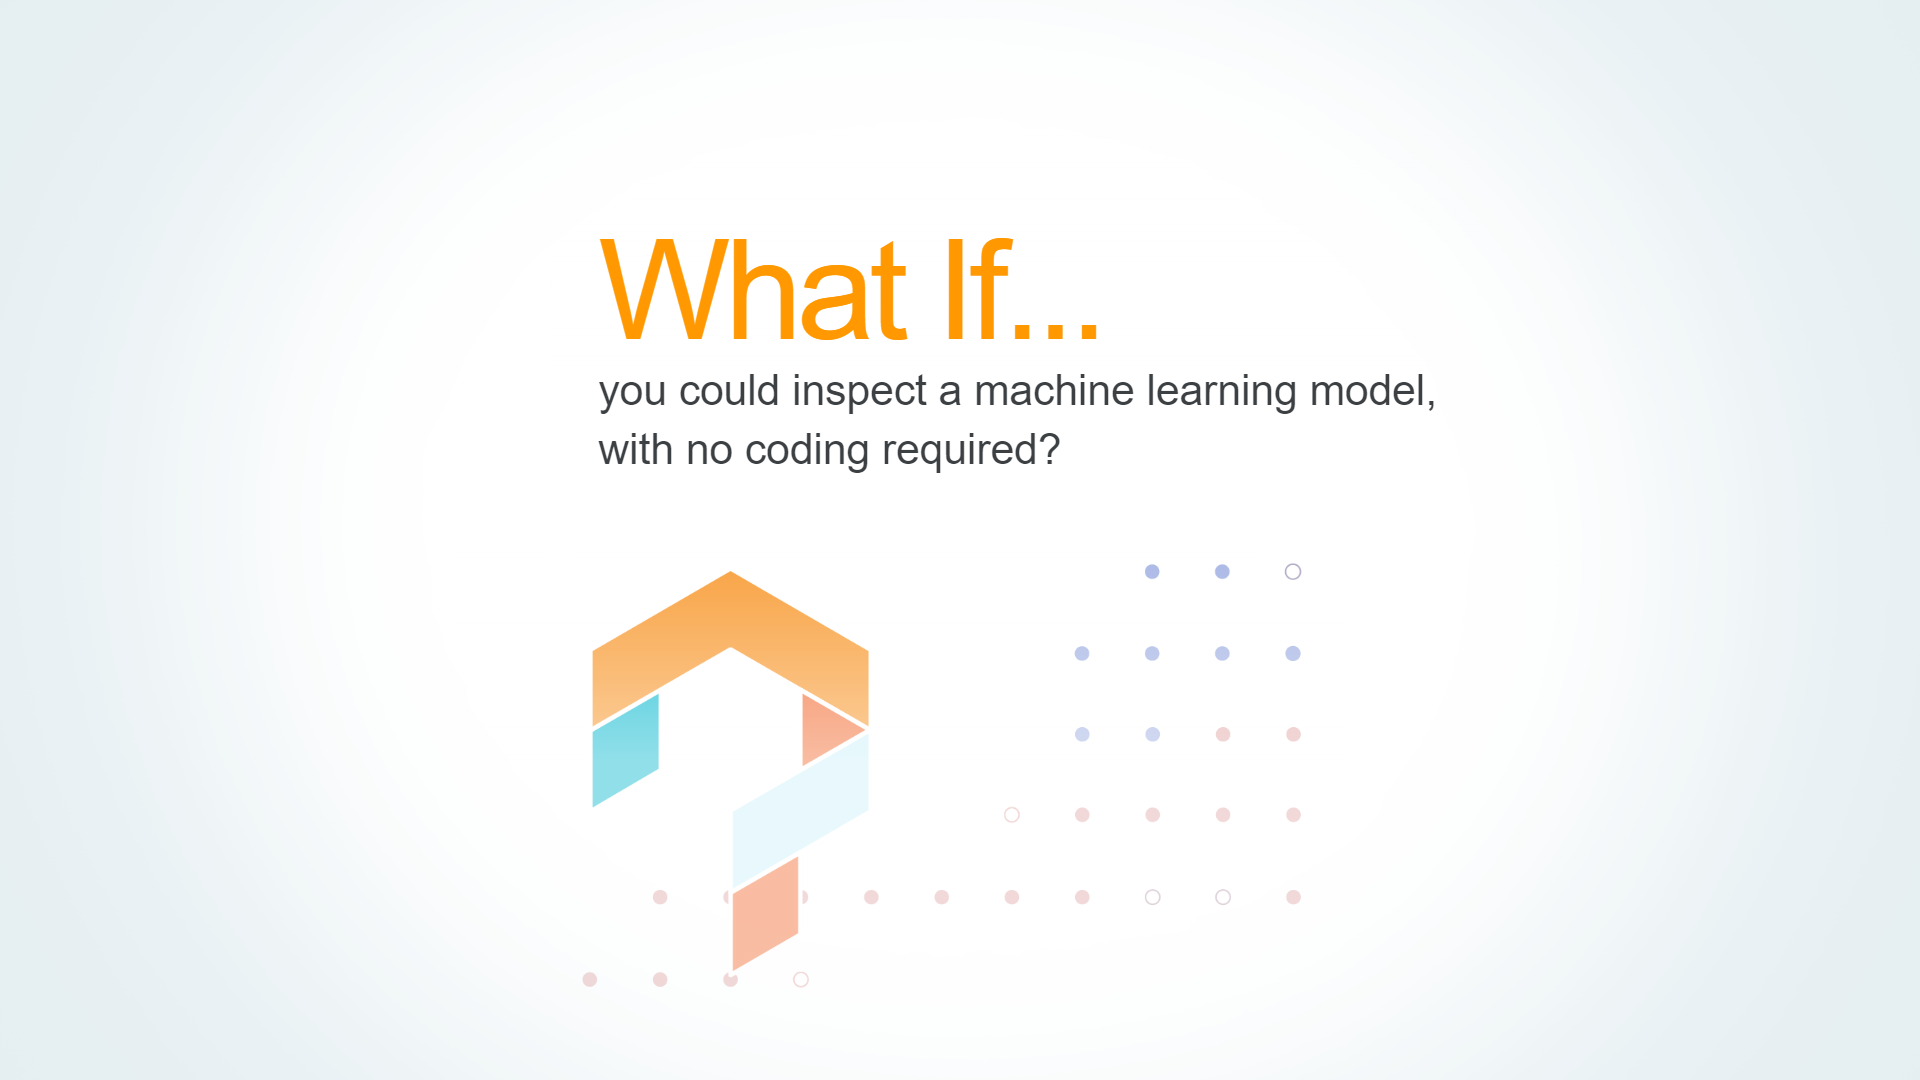 google's what-if tool for analyzing machine learning models without writing any code